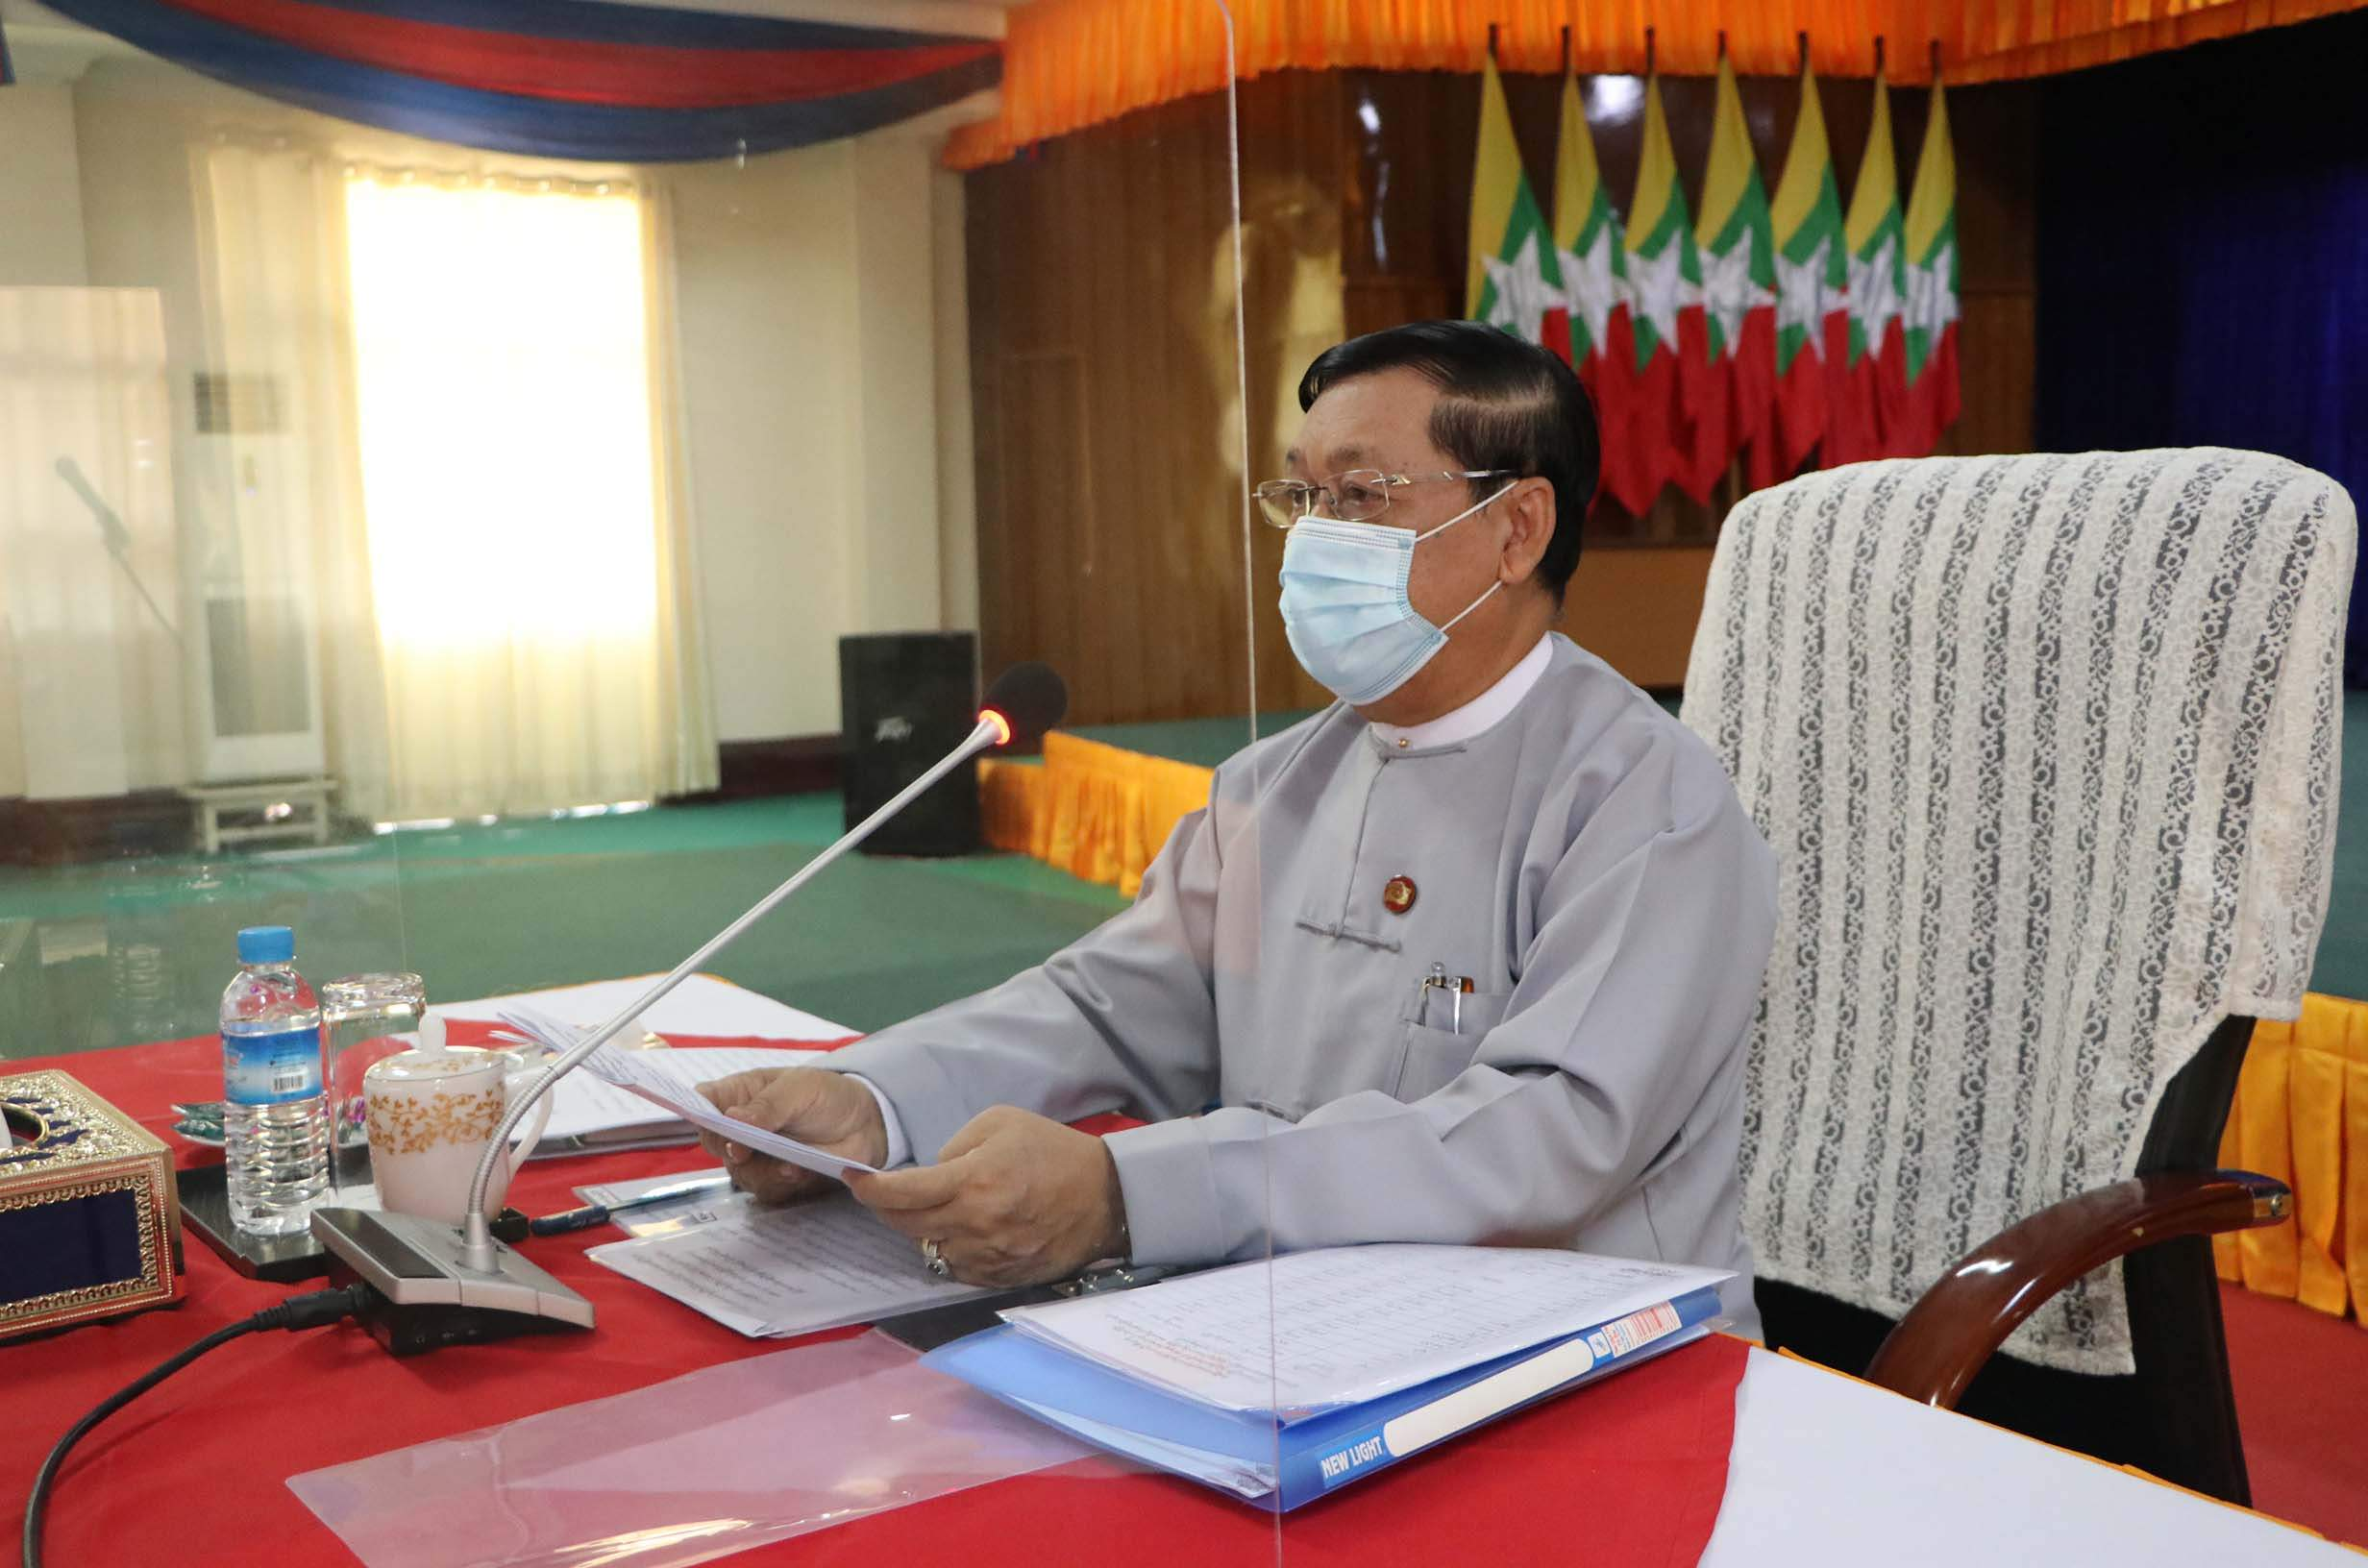 Union Minister U Thein Swe speaks during the coordination meeting in Nay Pyi Taw on 26 July 2020. Photo: MNA